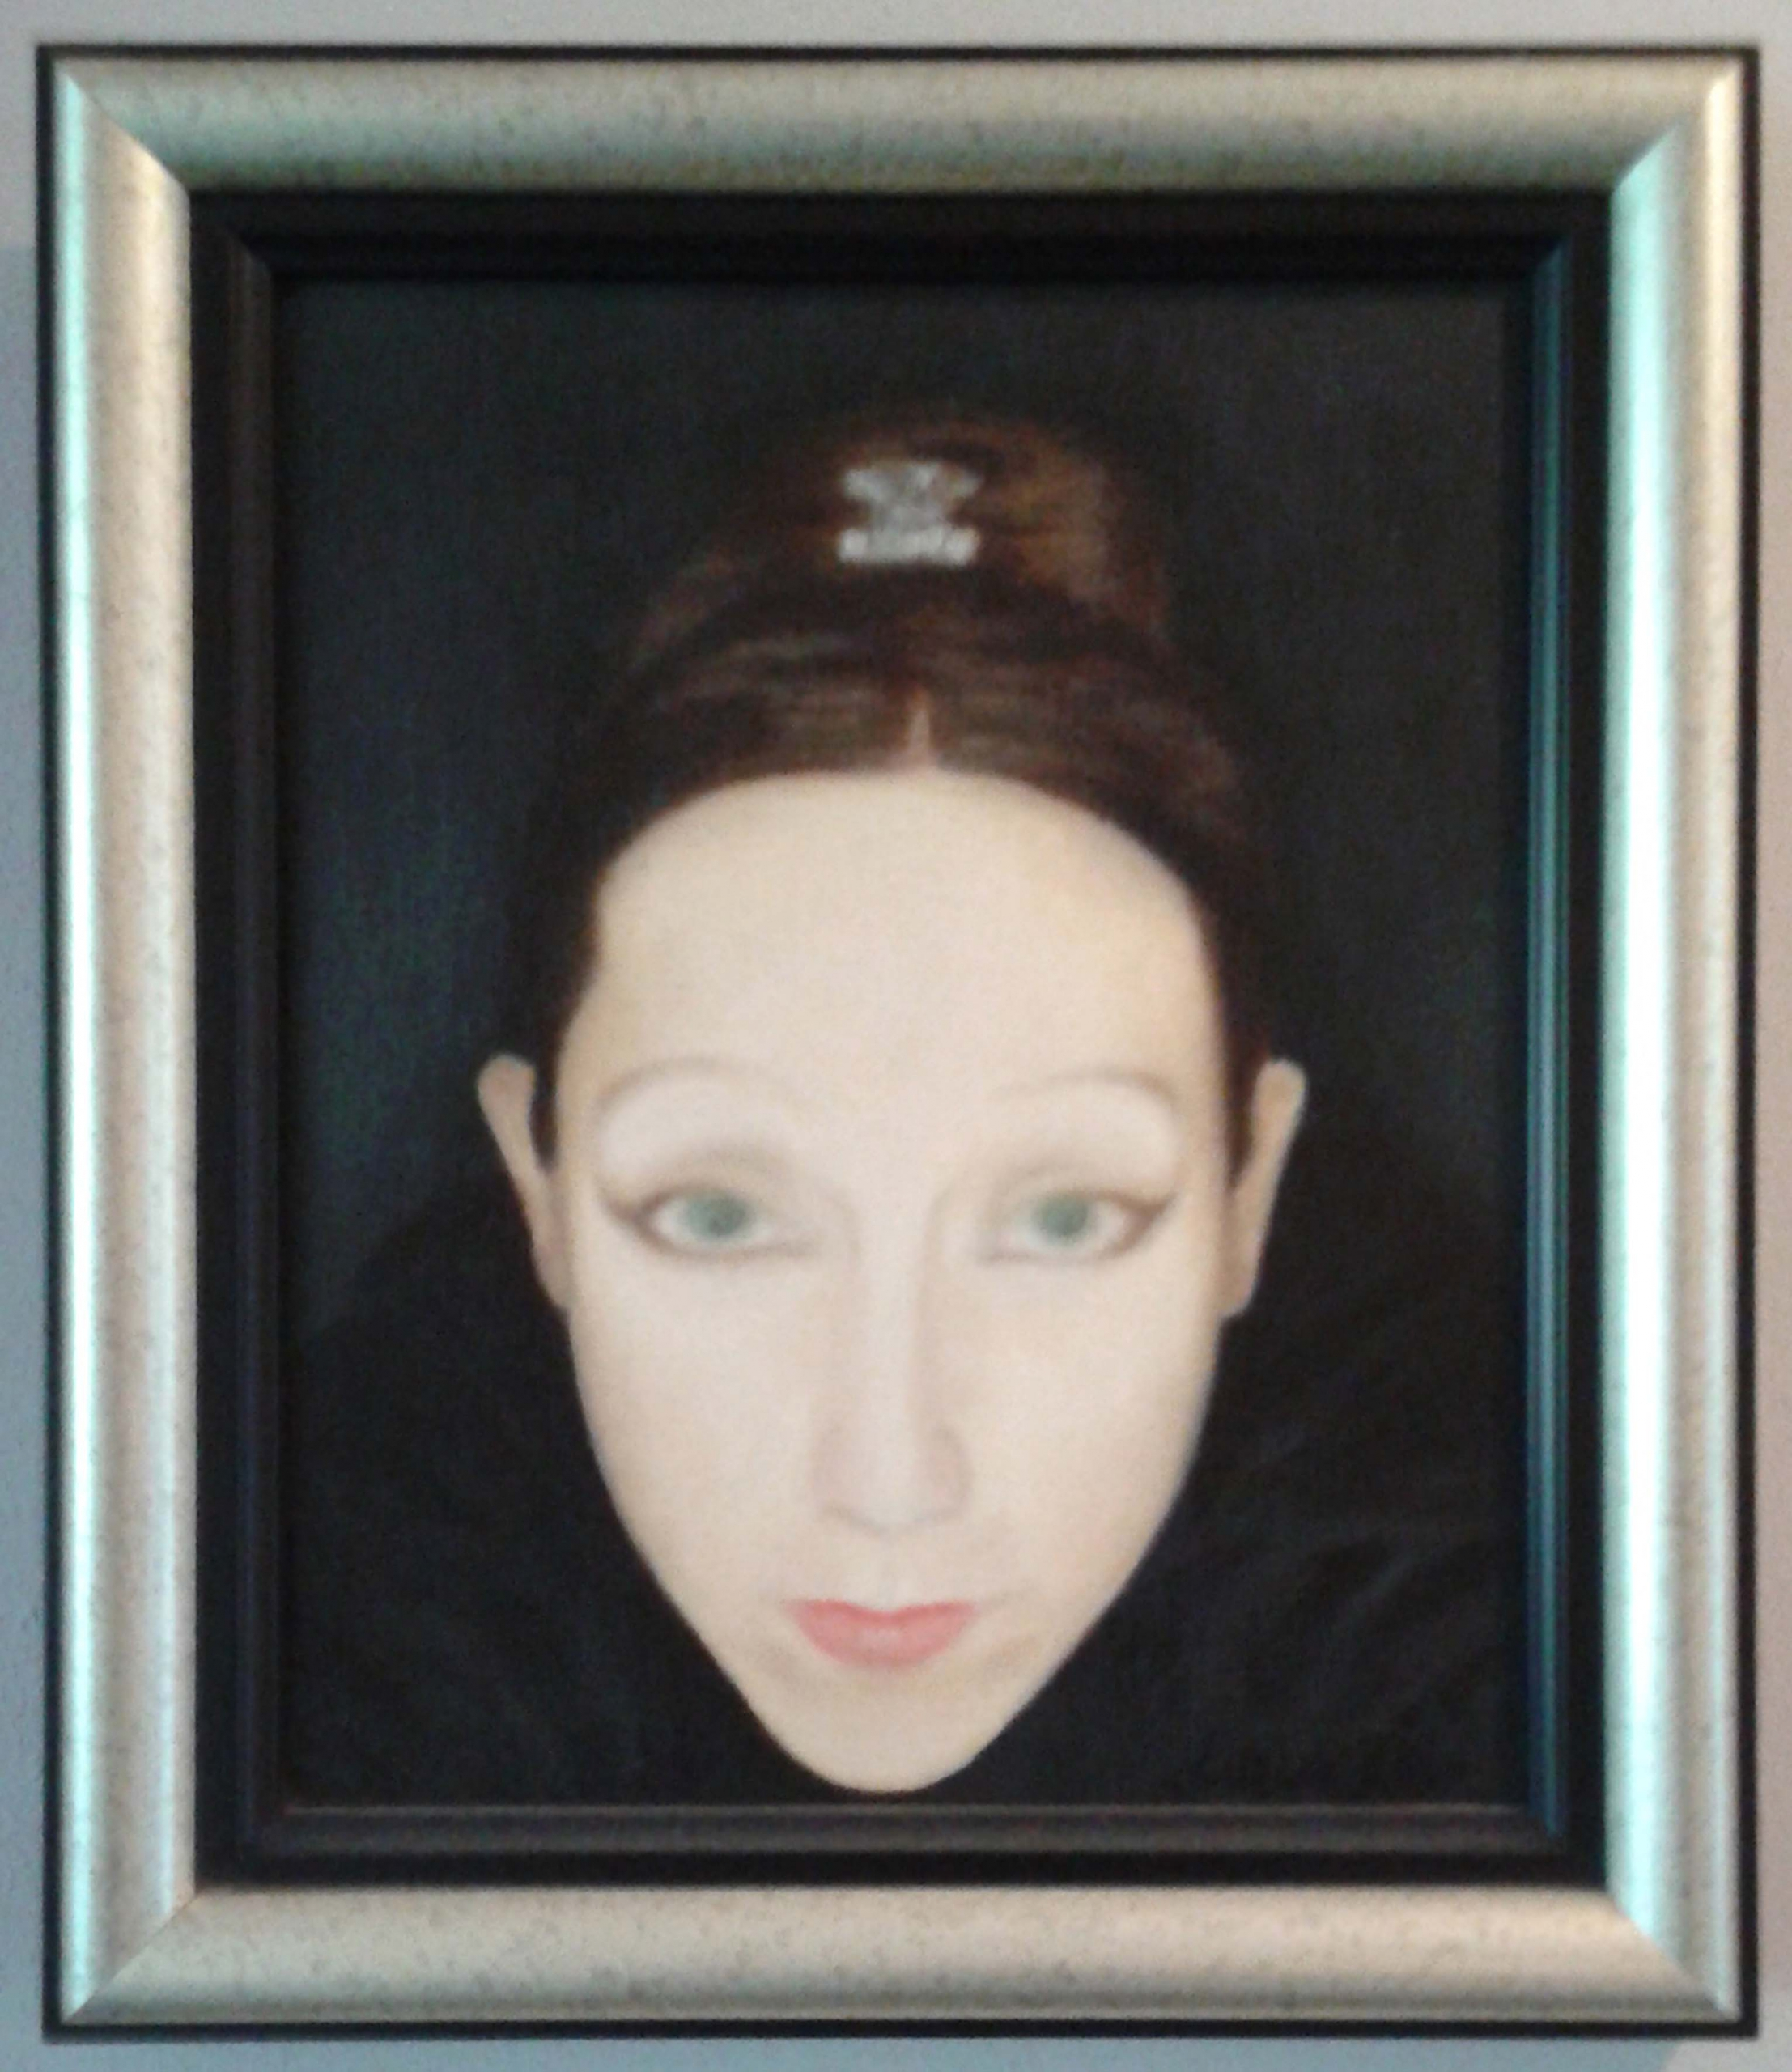 Lique Schoot, Self-portrait